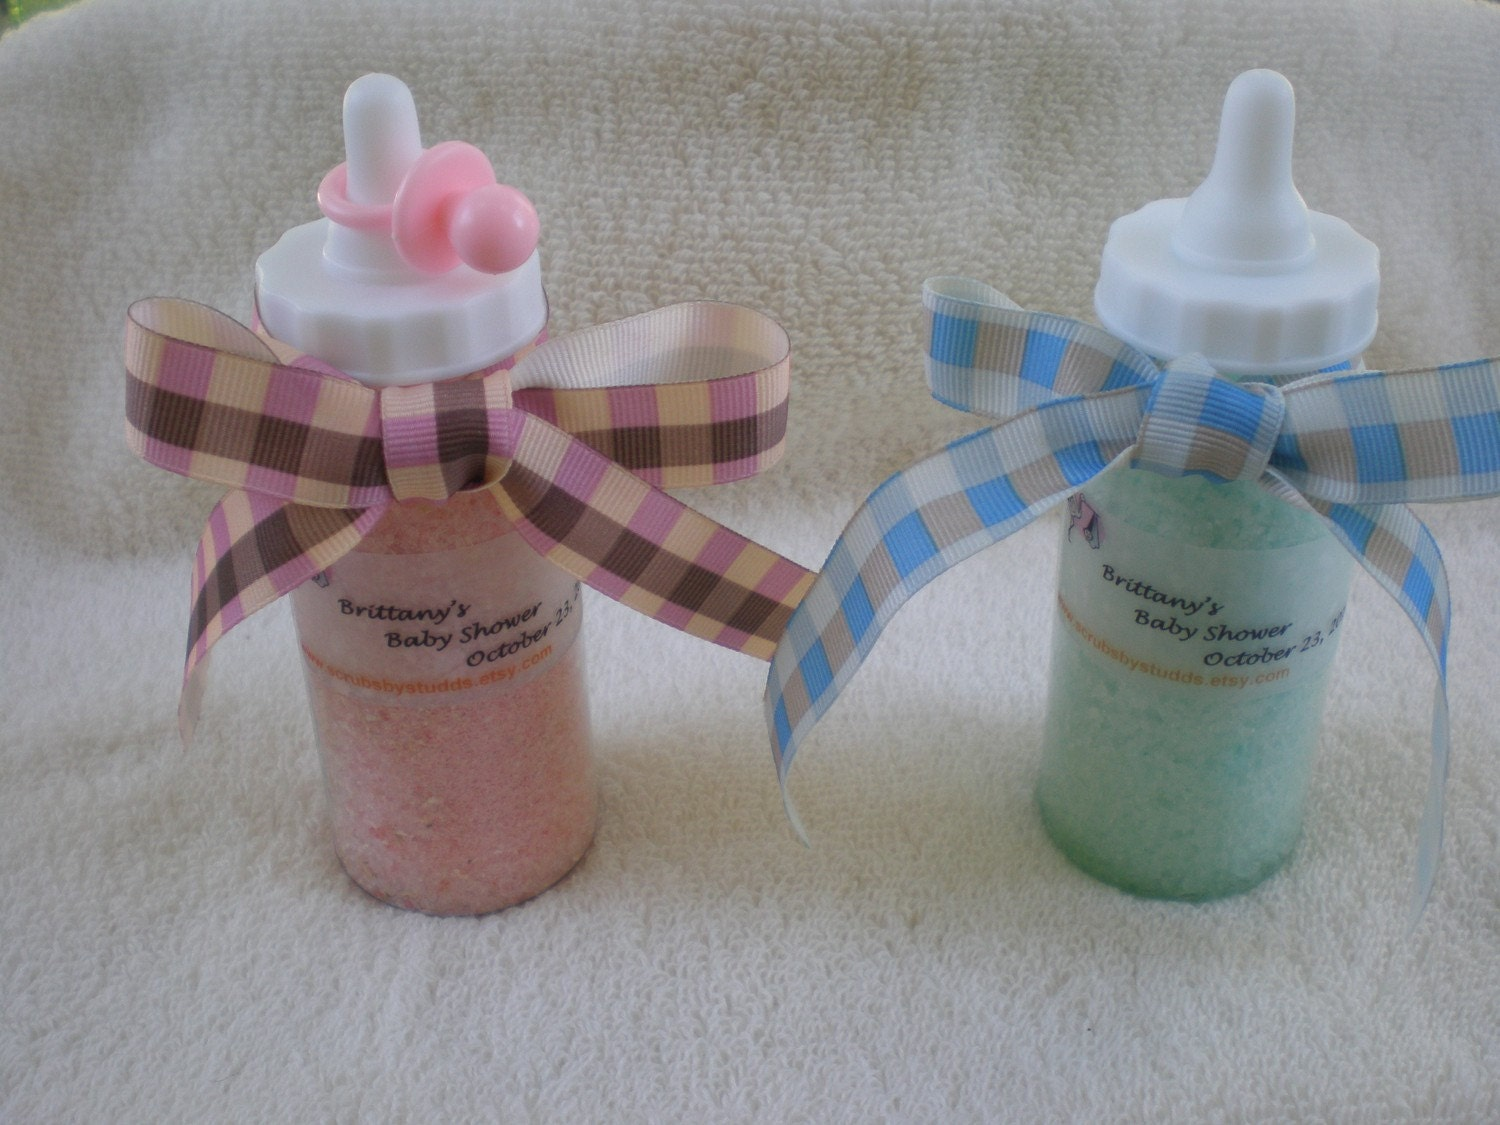 baby shower baby bottle bath salt favors 12 per by bath salt baby shower favors in sweet little jars